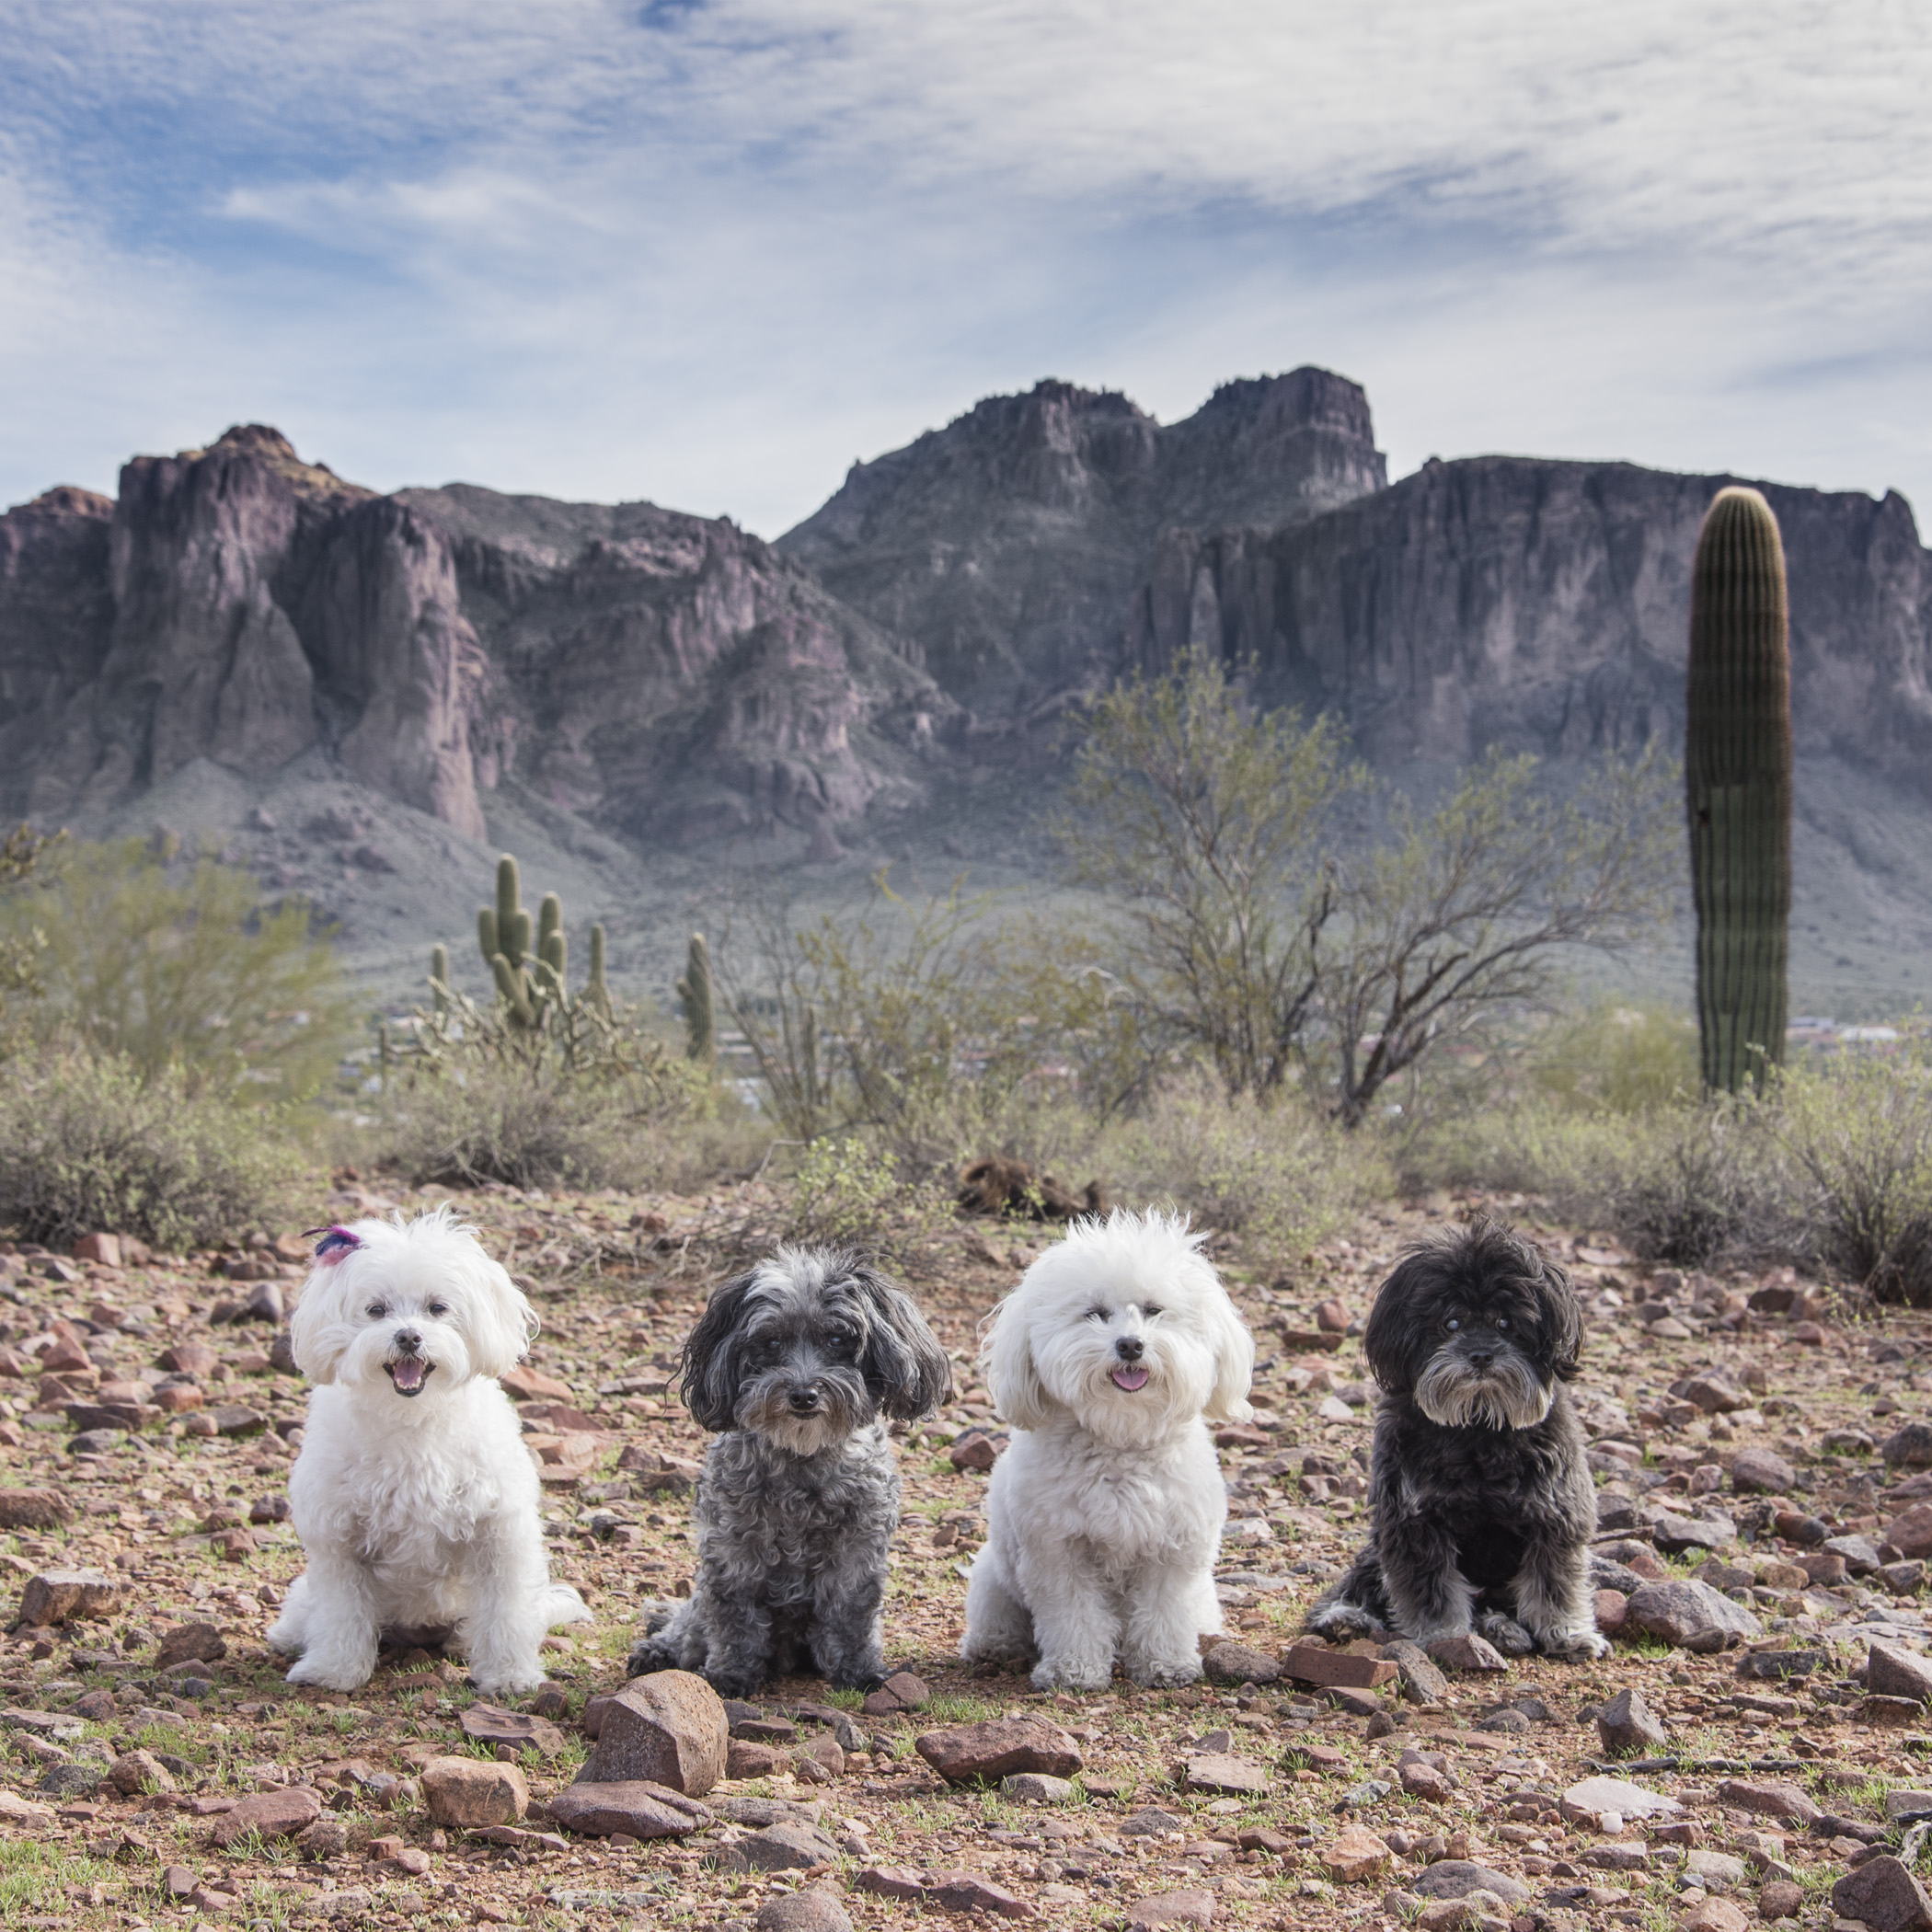 On the east side of Phoenix is a mountain range called the Superstition Mountains. They stand very tall, with a unique shape to them. We've never been to that side of town, so we decided to do a one day adventure.